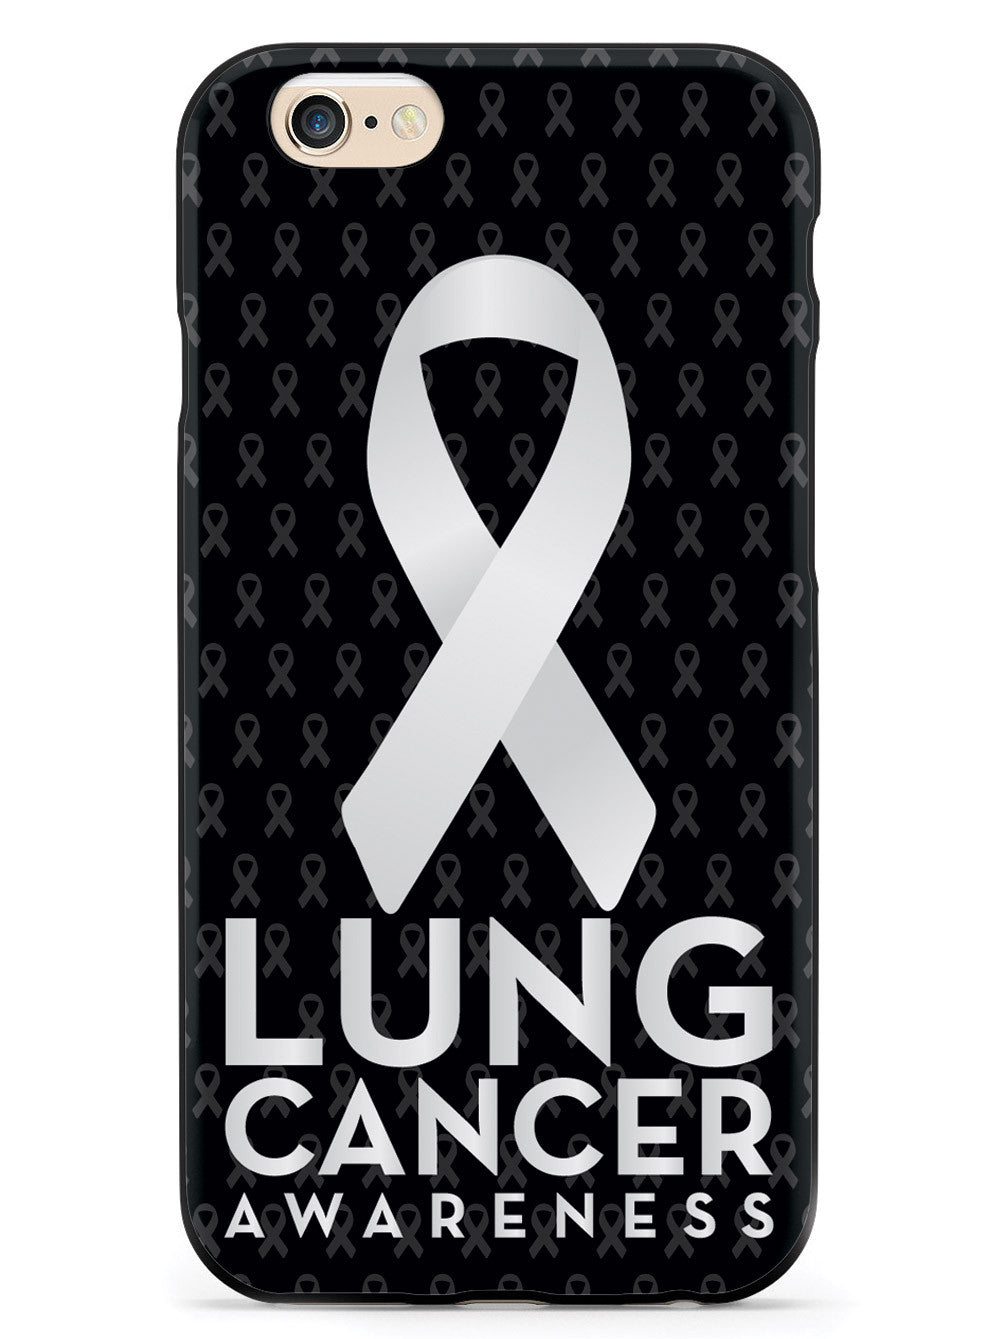 Lung Cancer Awareness - Black Case